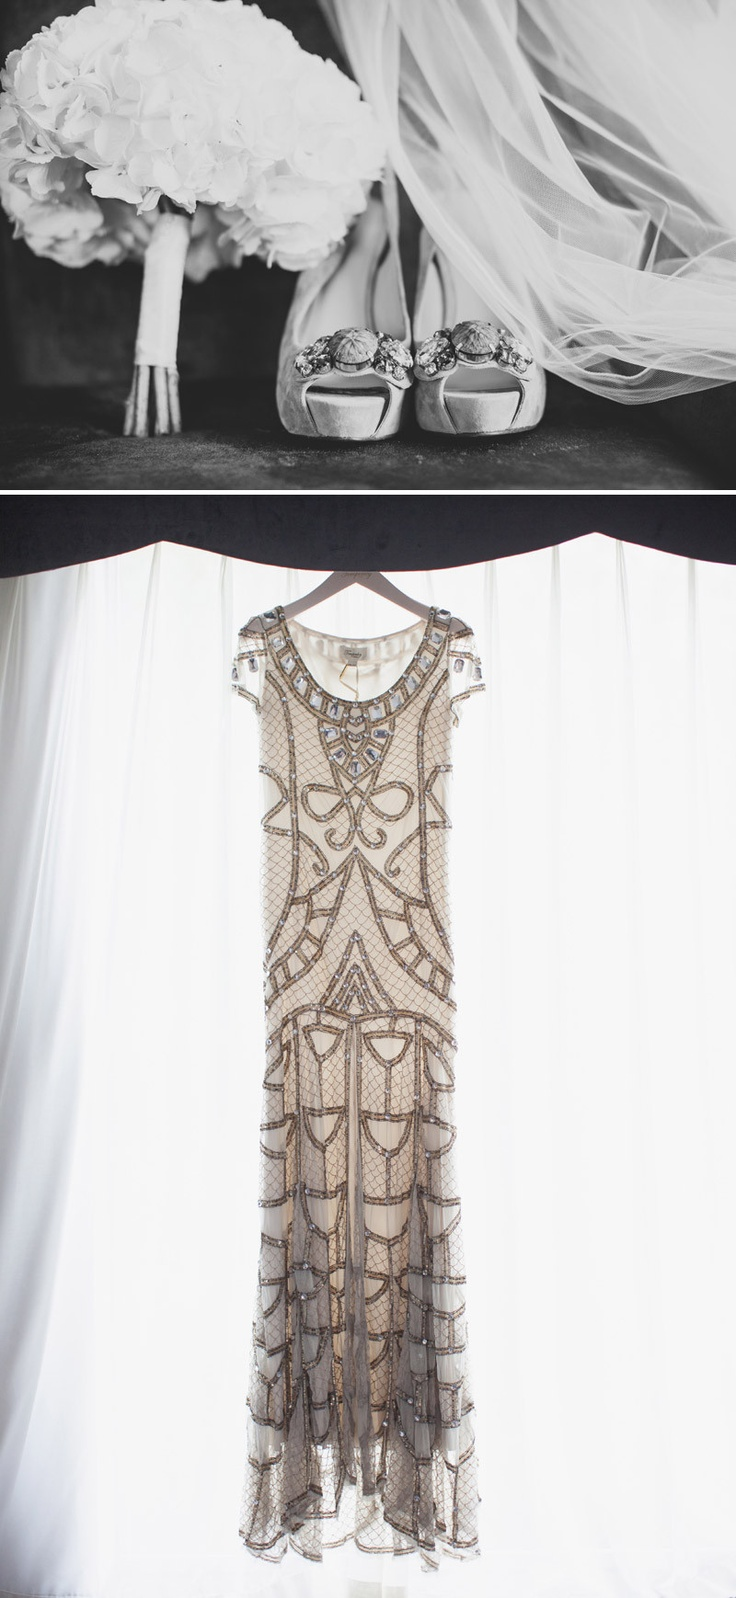 How amazing is this Alice Temperley wedding dress?! ok so i wouldn't wear it on my wedding day, but i love old fashioned wedding dresses...